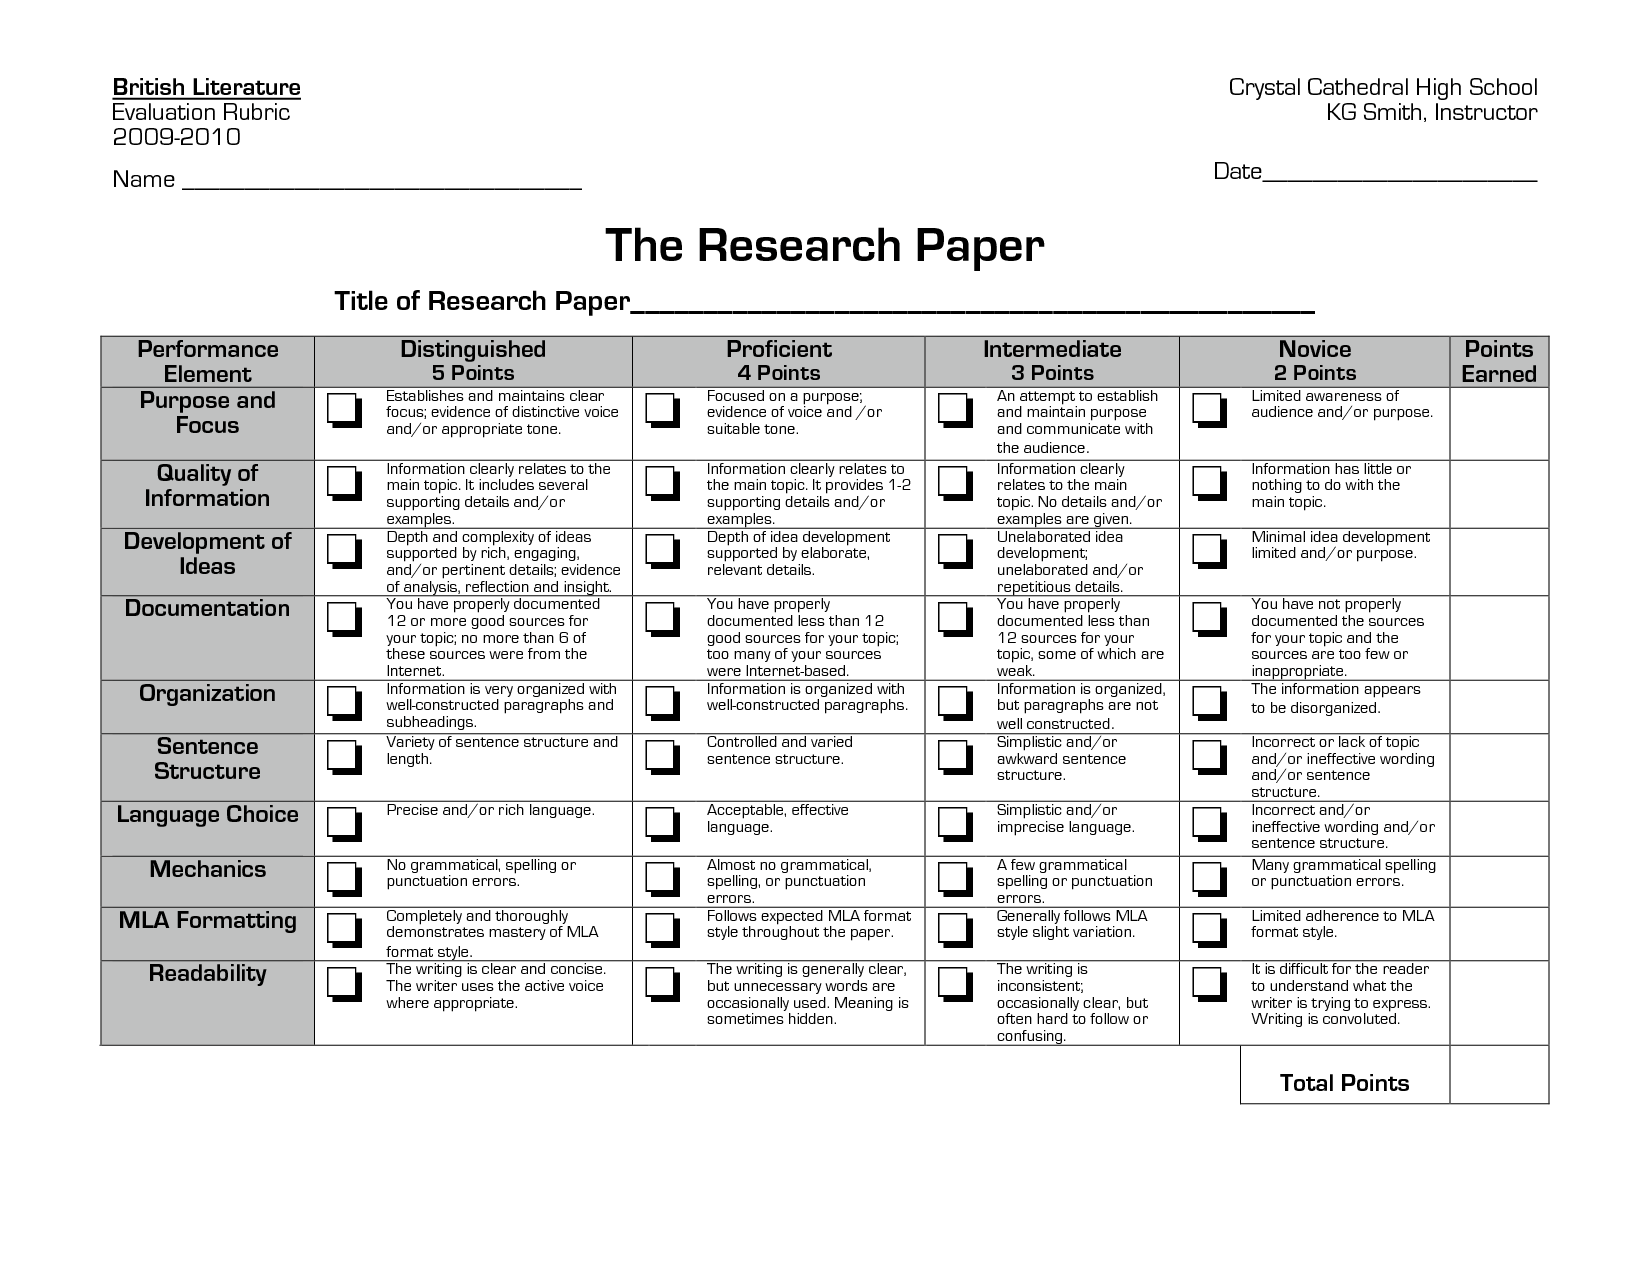 rubric research papers high school Research paper rubric high school - top reliable and trustworthy academic writing aid professional researches at reasonable costs available here will turn your.